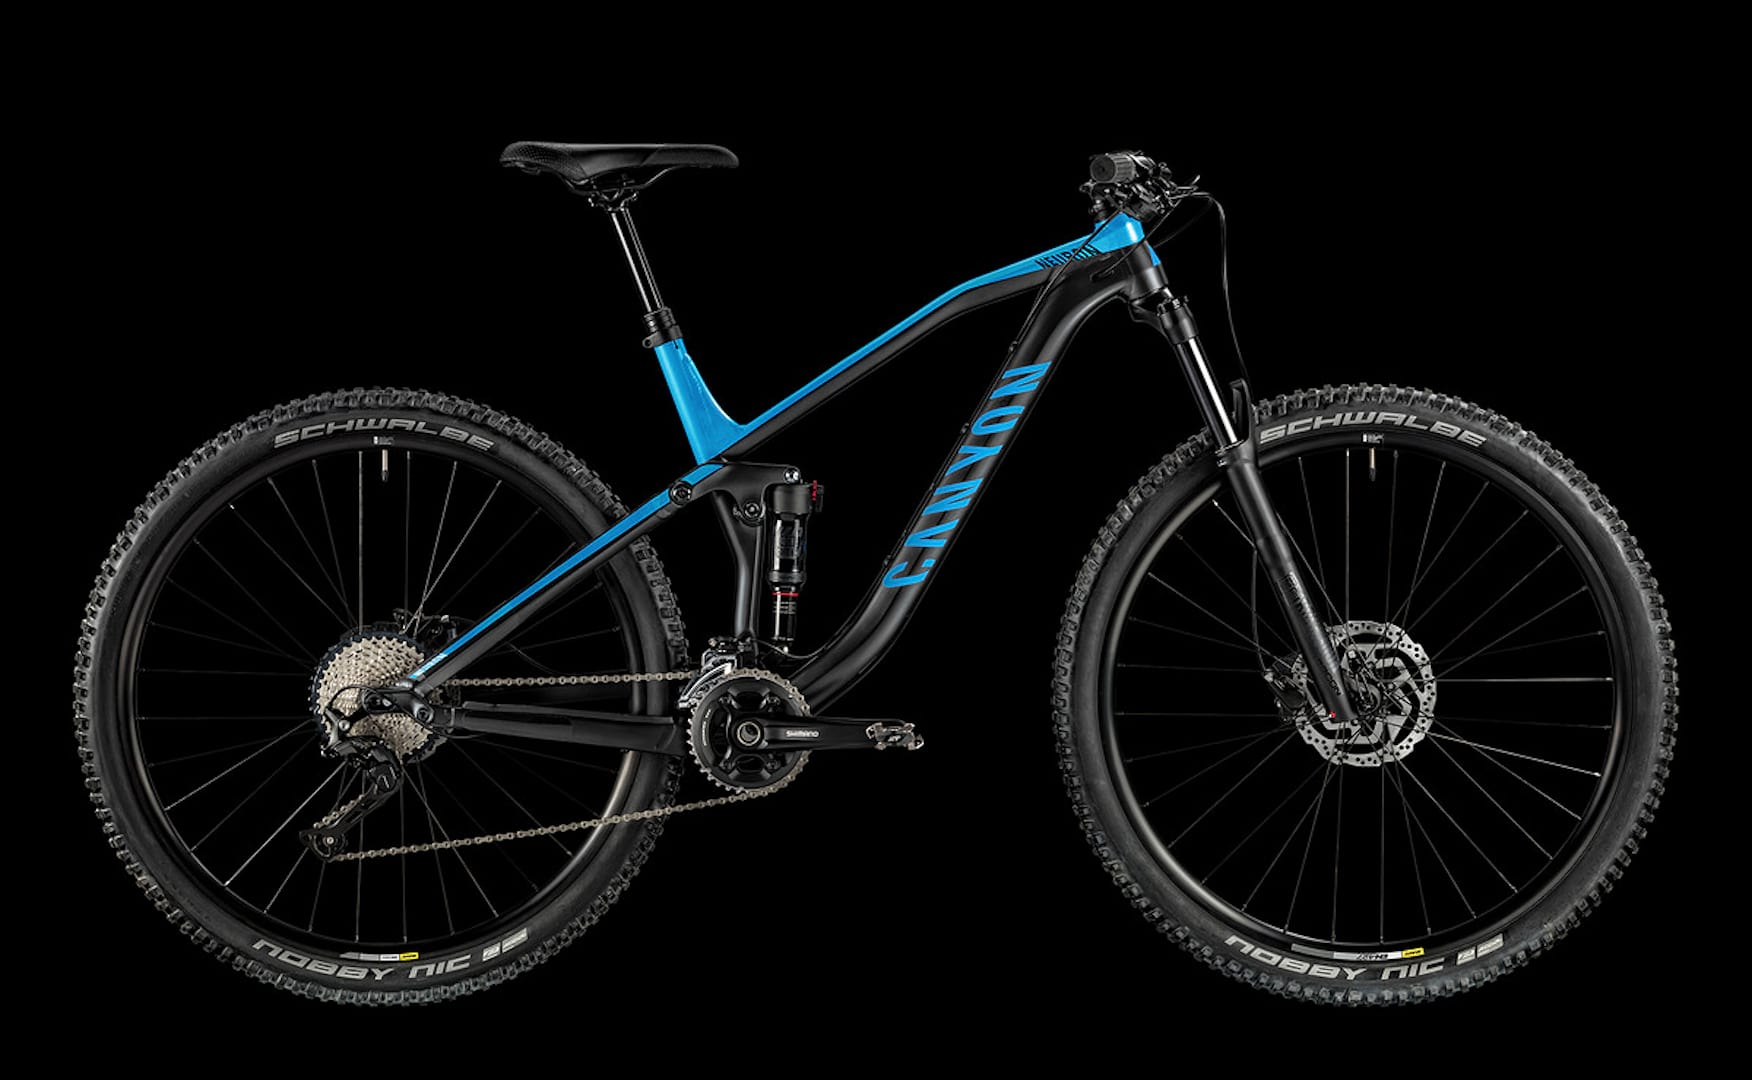 de58a67463a 2019 Canyon Neuron Gets 130mm Travel, New Geometry And Starts At Just £1,449